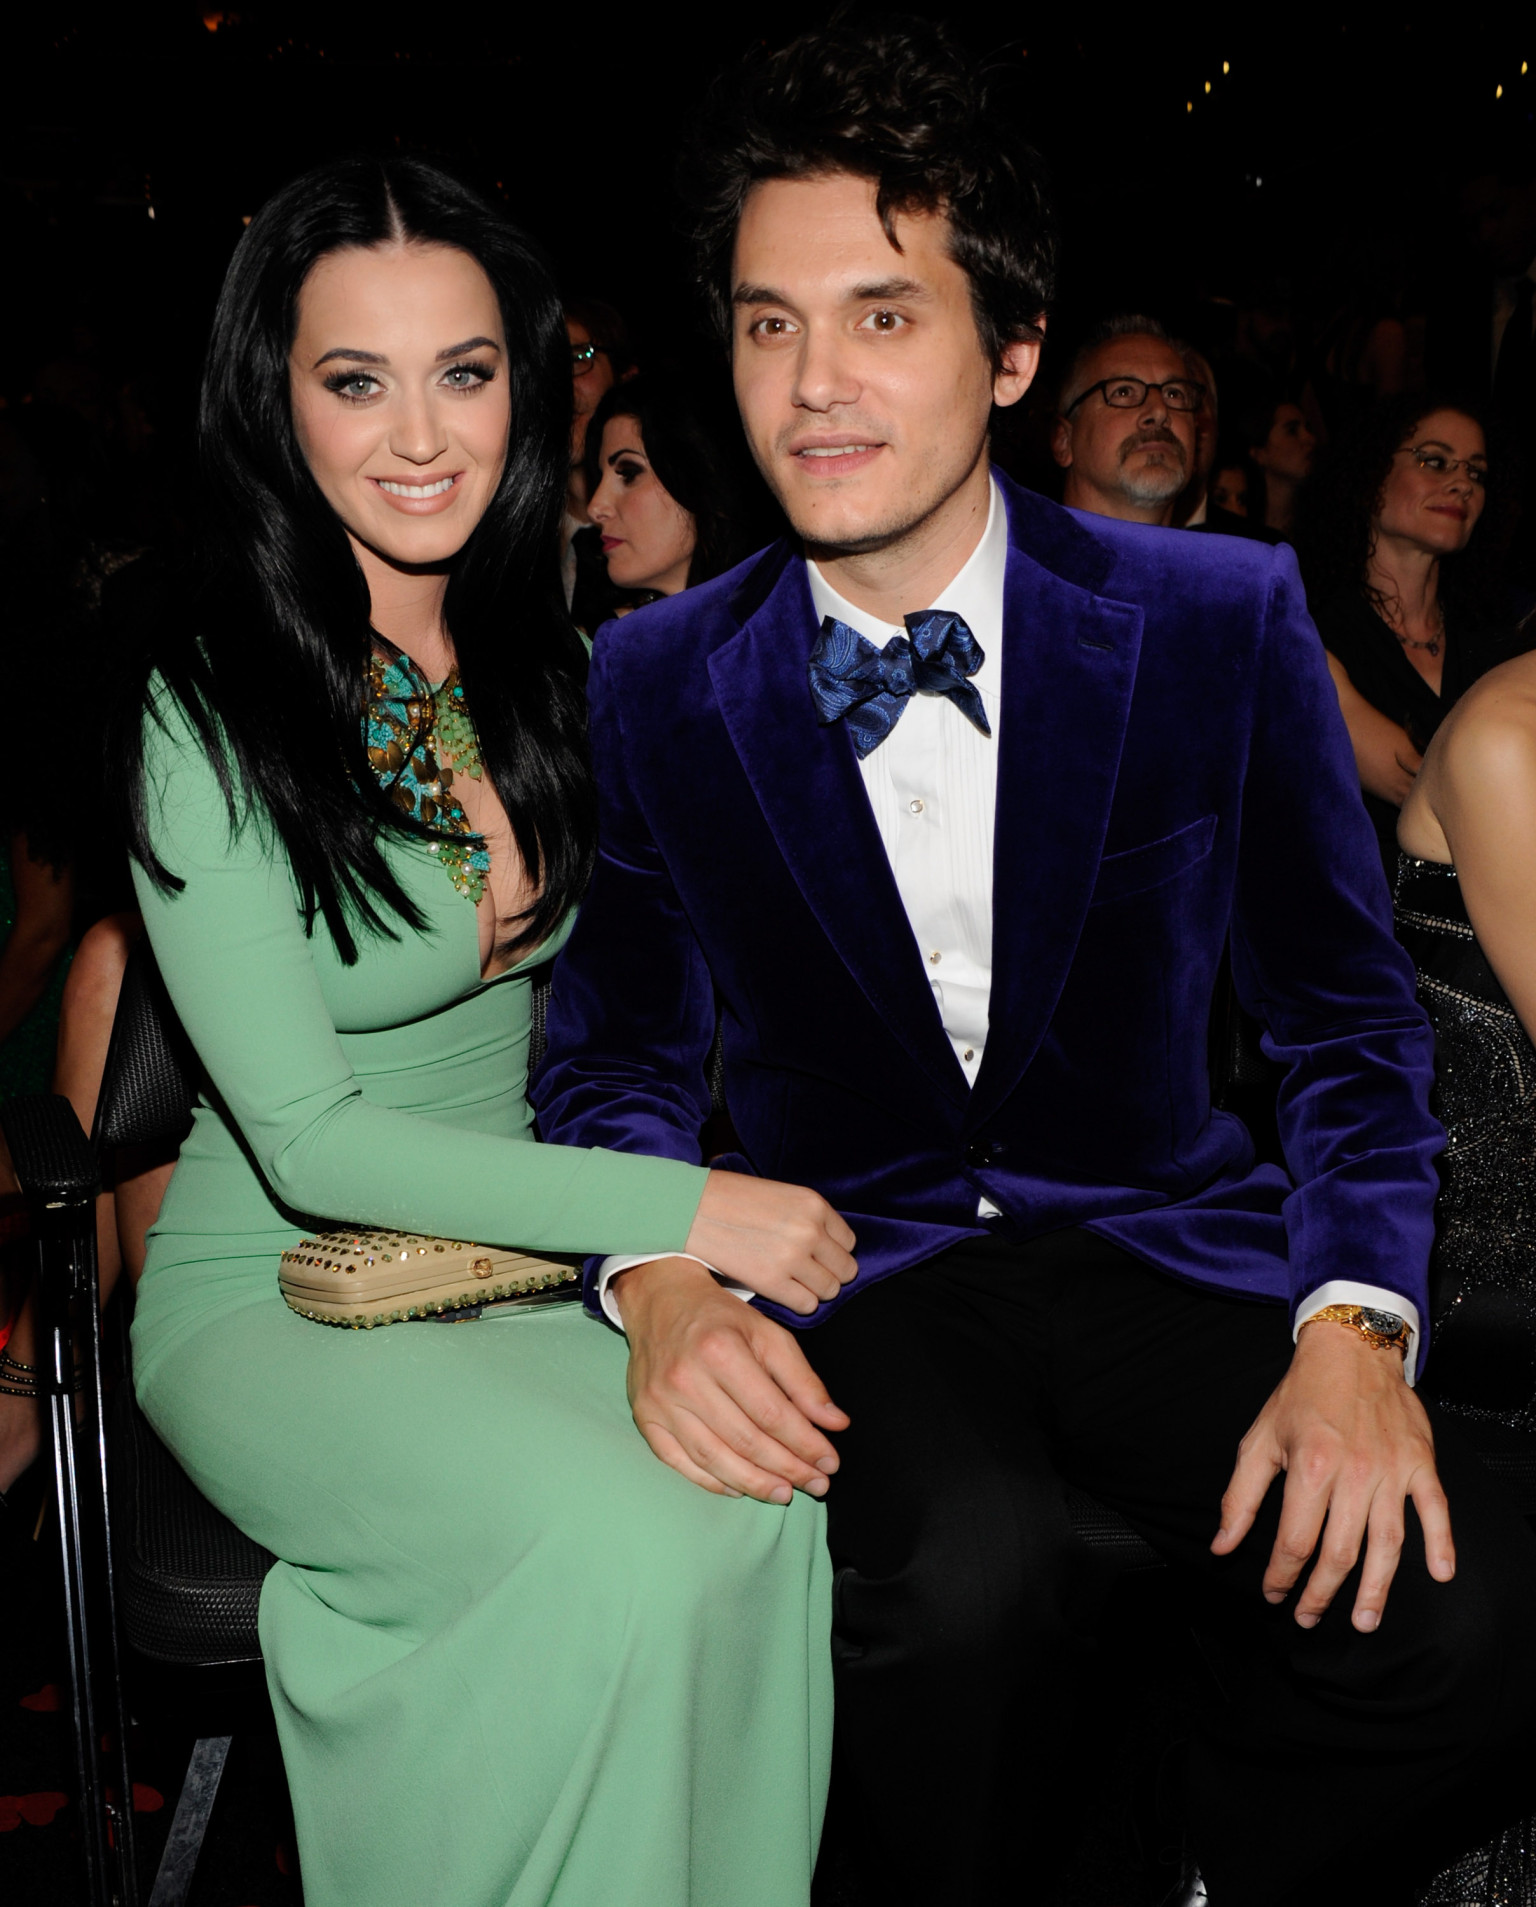 katy perry and john mayer dating again